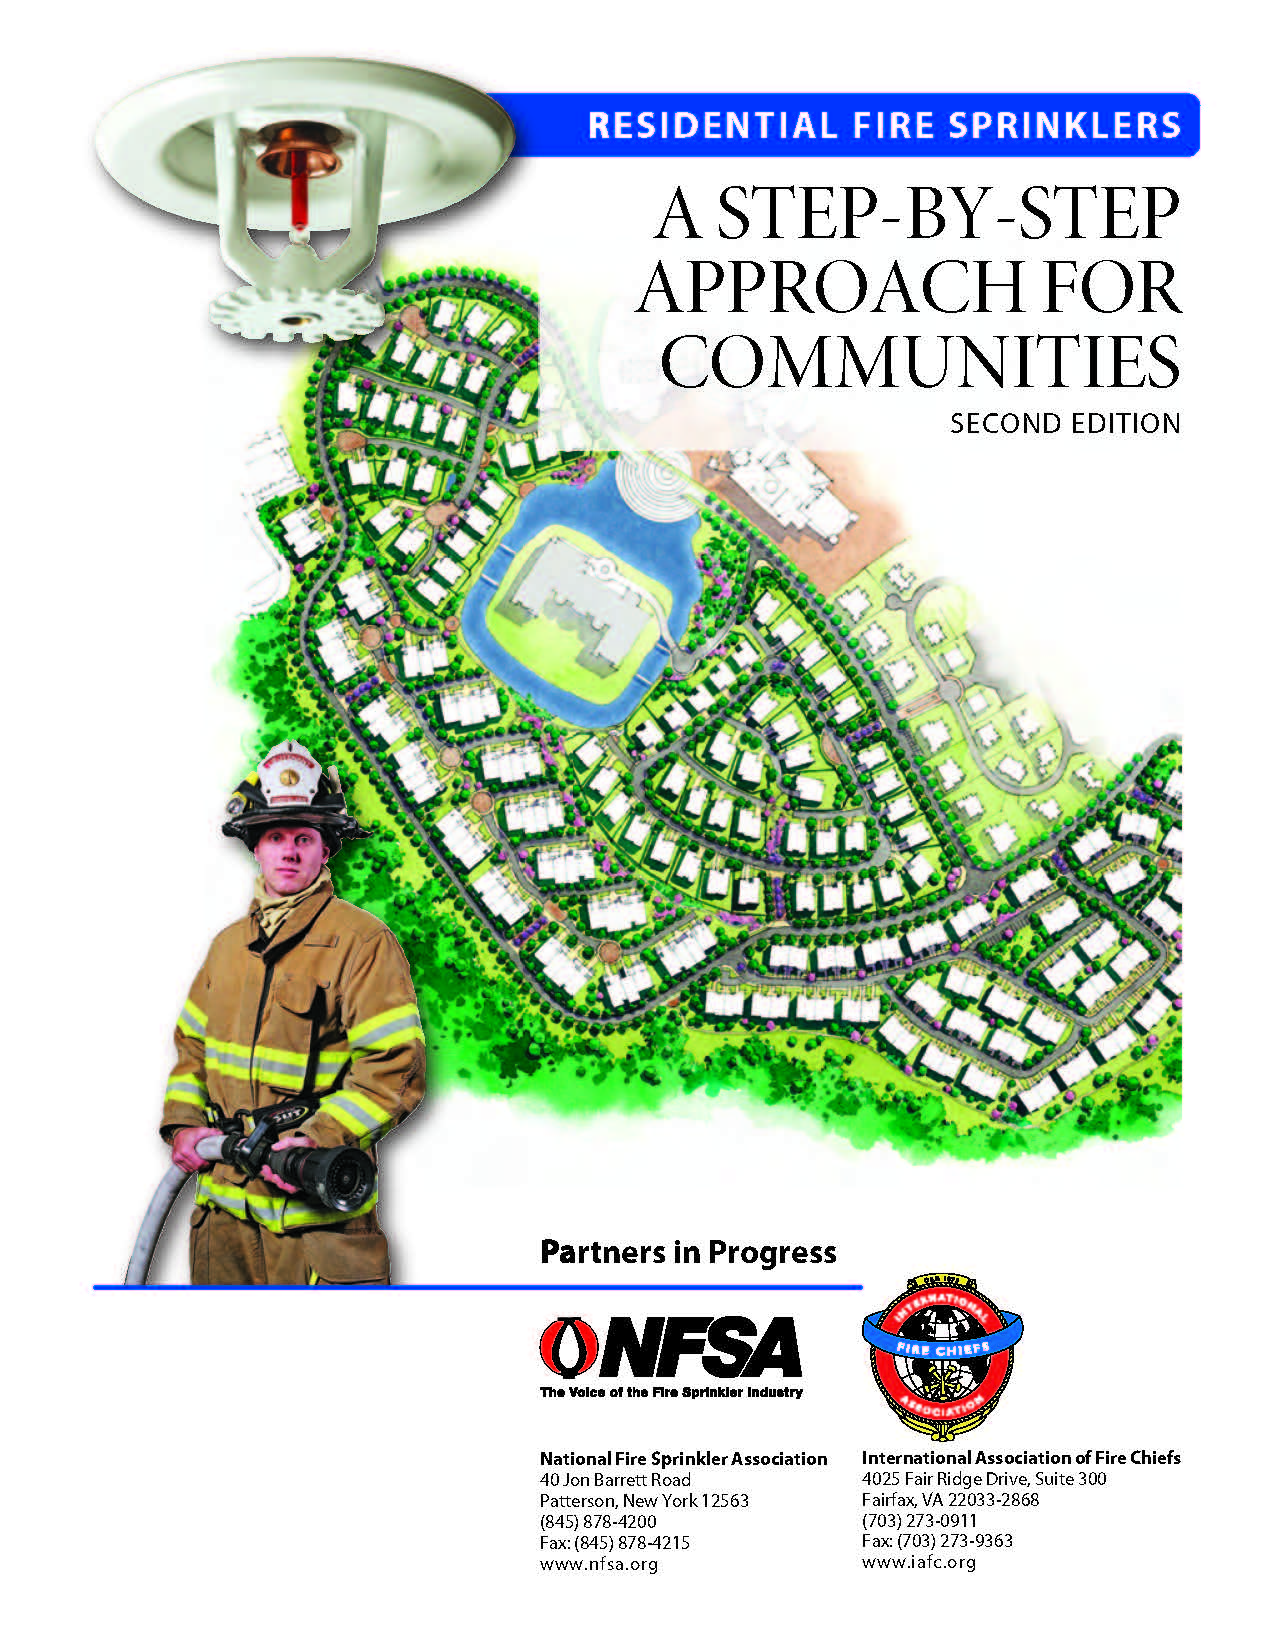 NFSA/IAFC Guide - Residential Fire Sprinklers: A Step by Step Approach for Communities